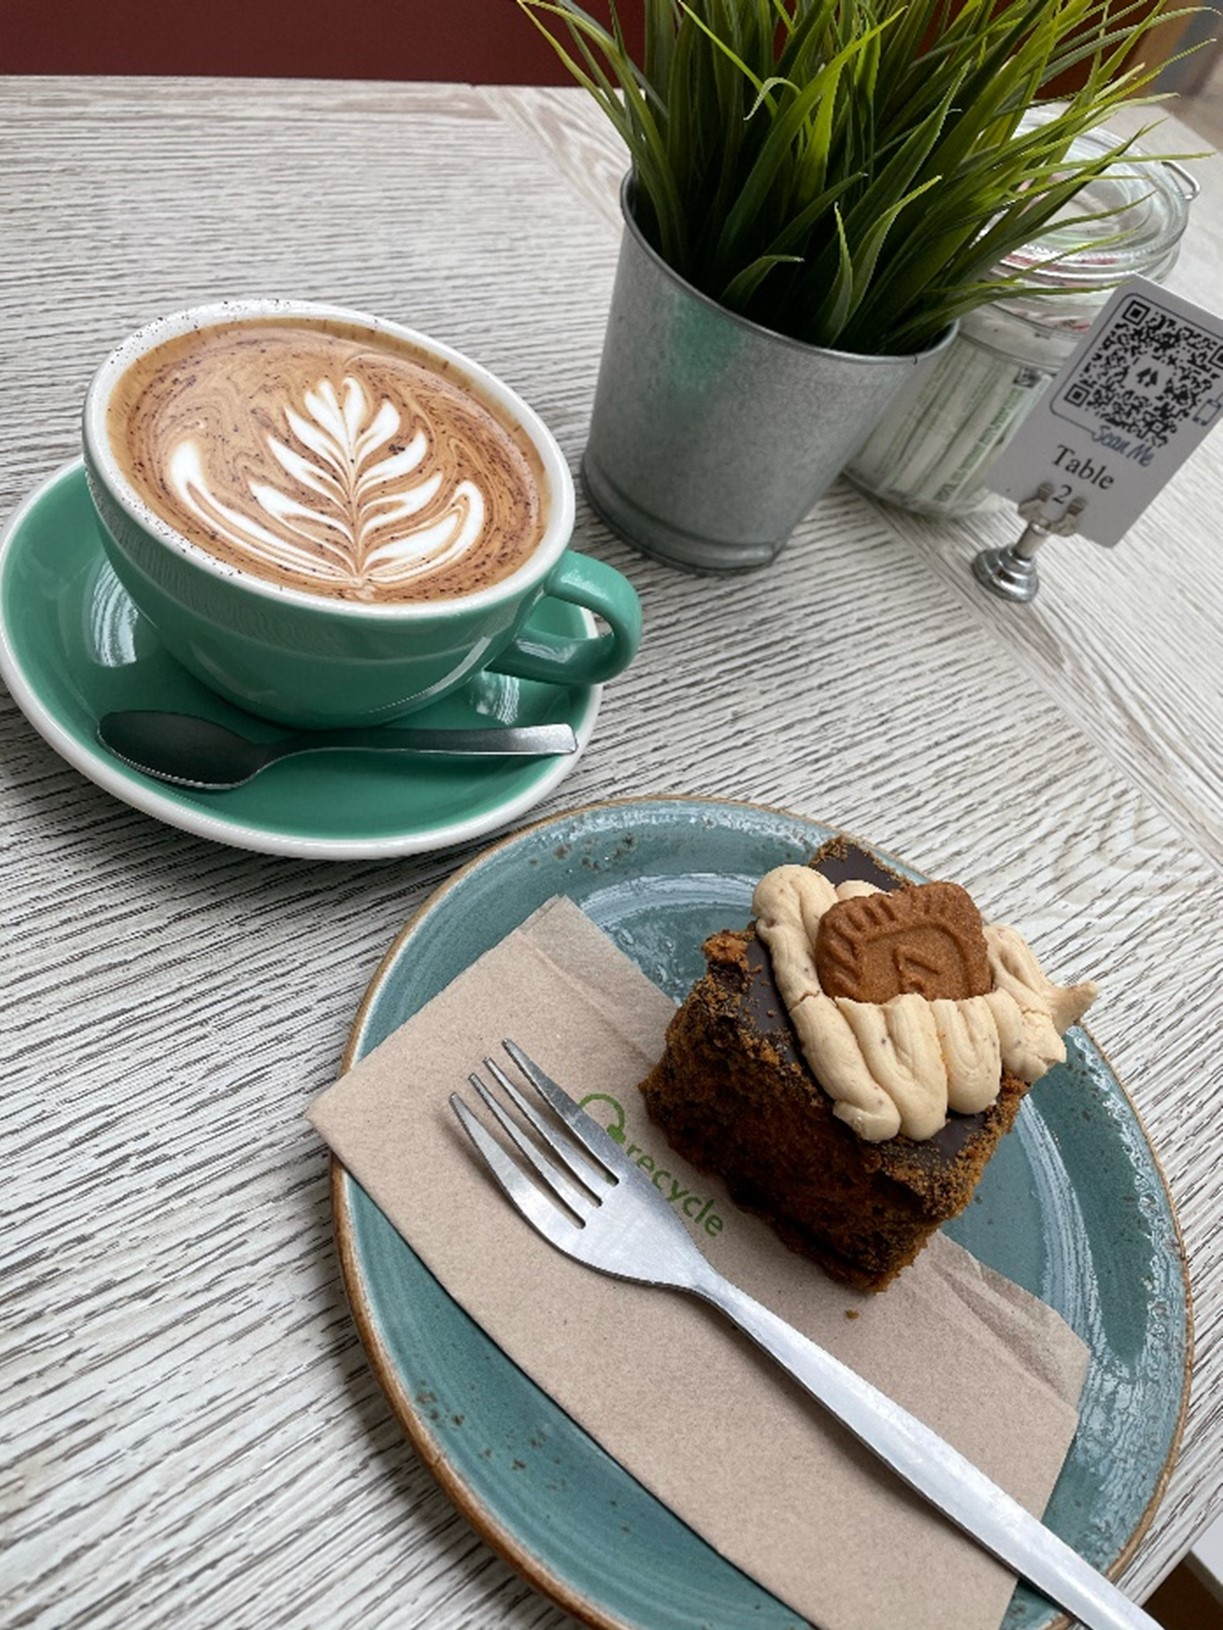 A coffee and cake from Coffika